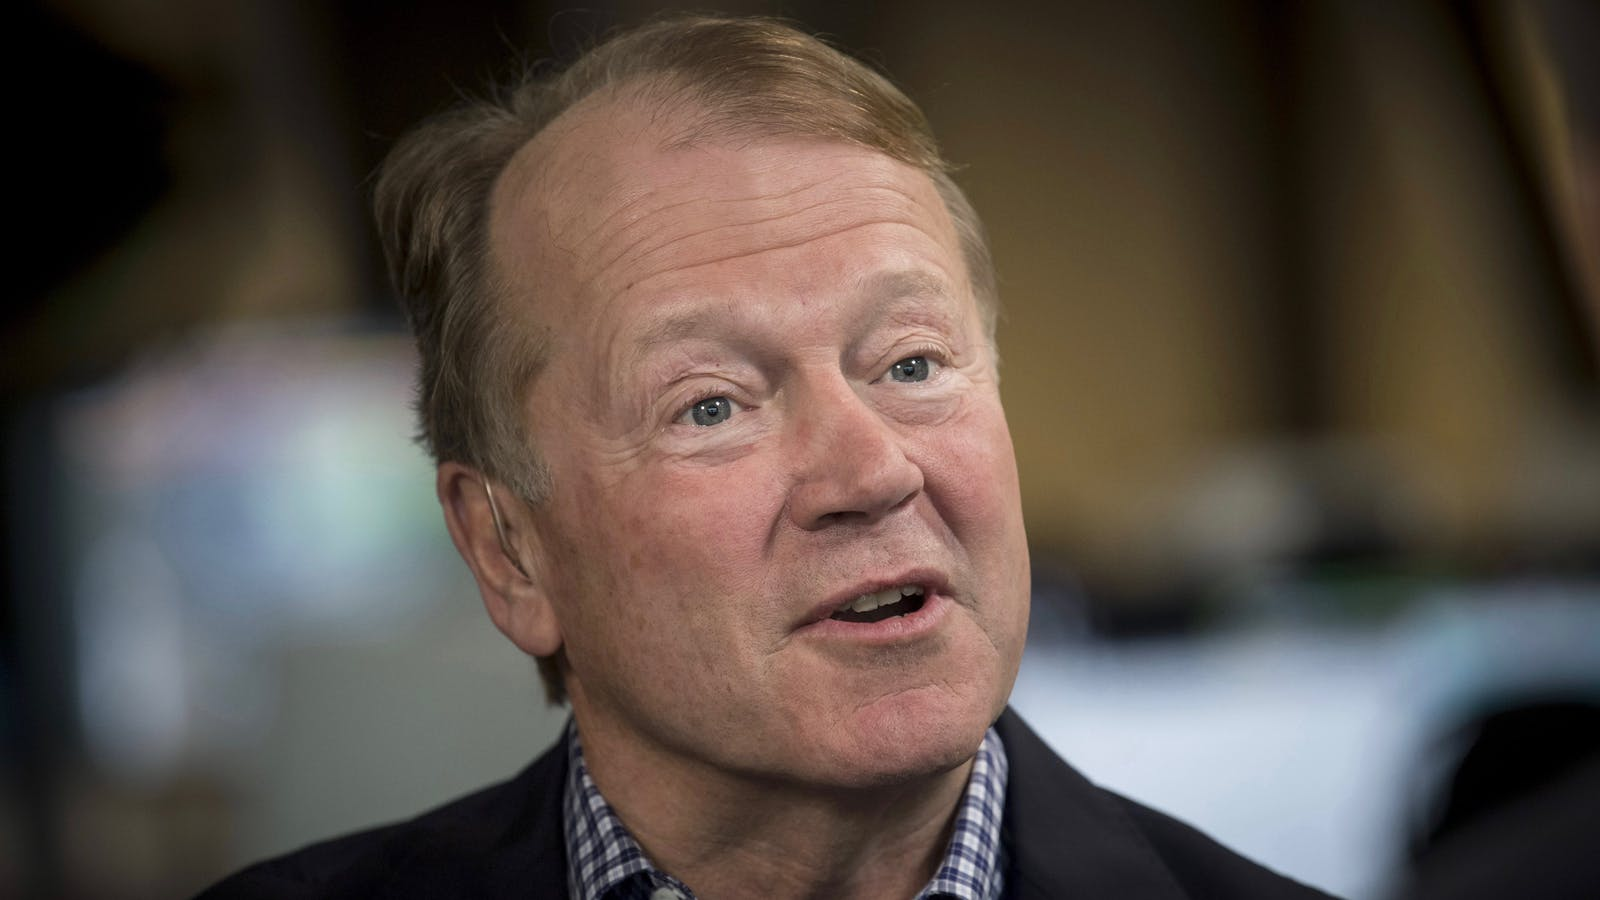 John Chambers. Photo by Bloomberg.